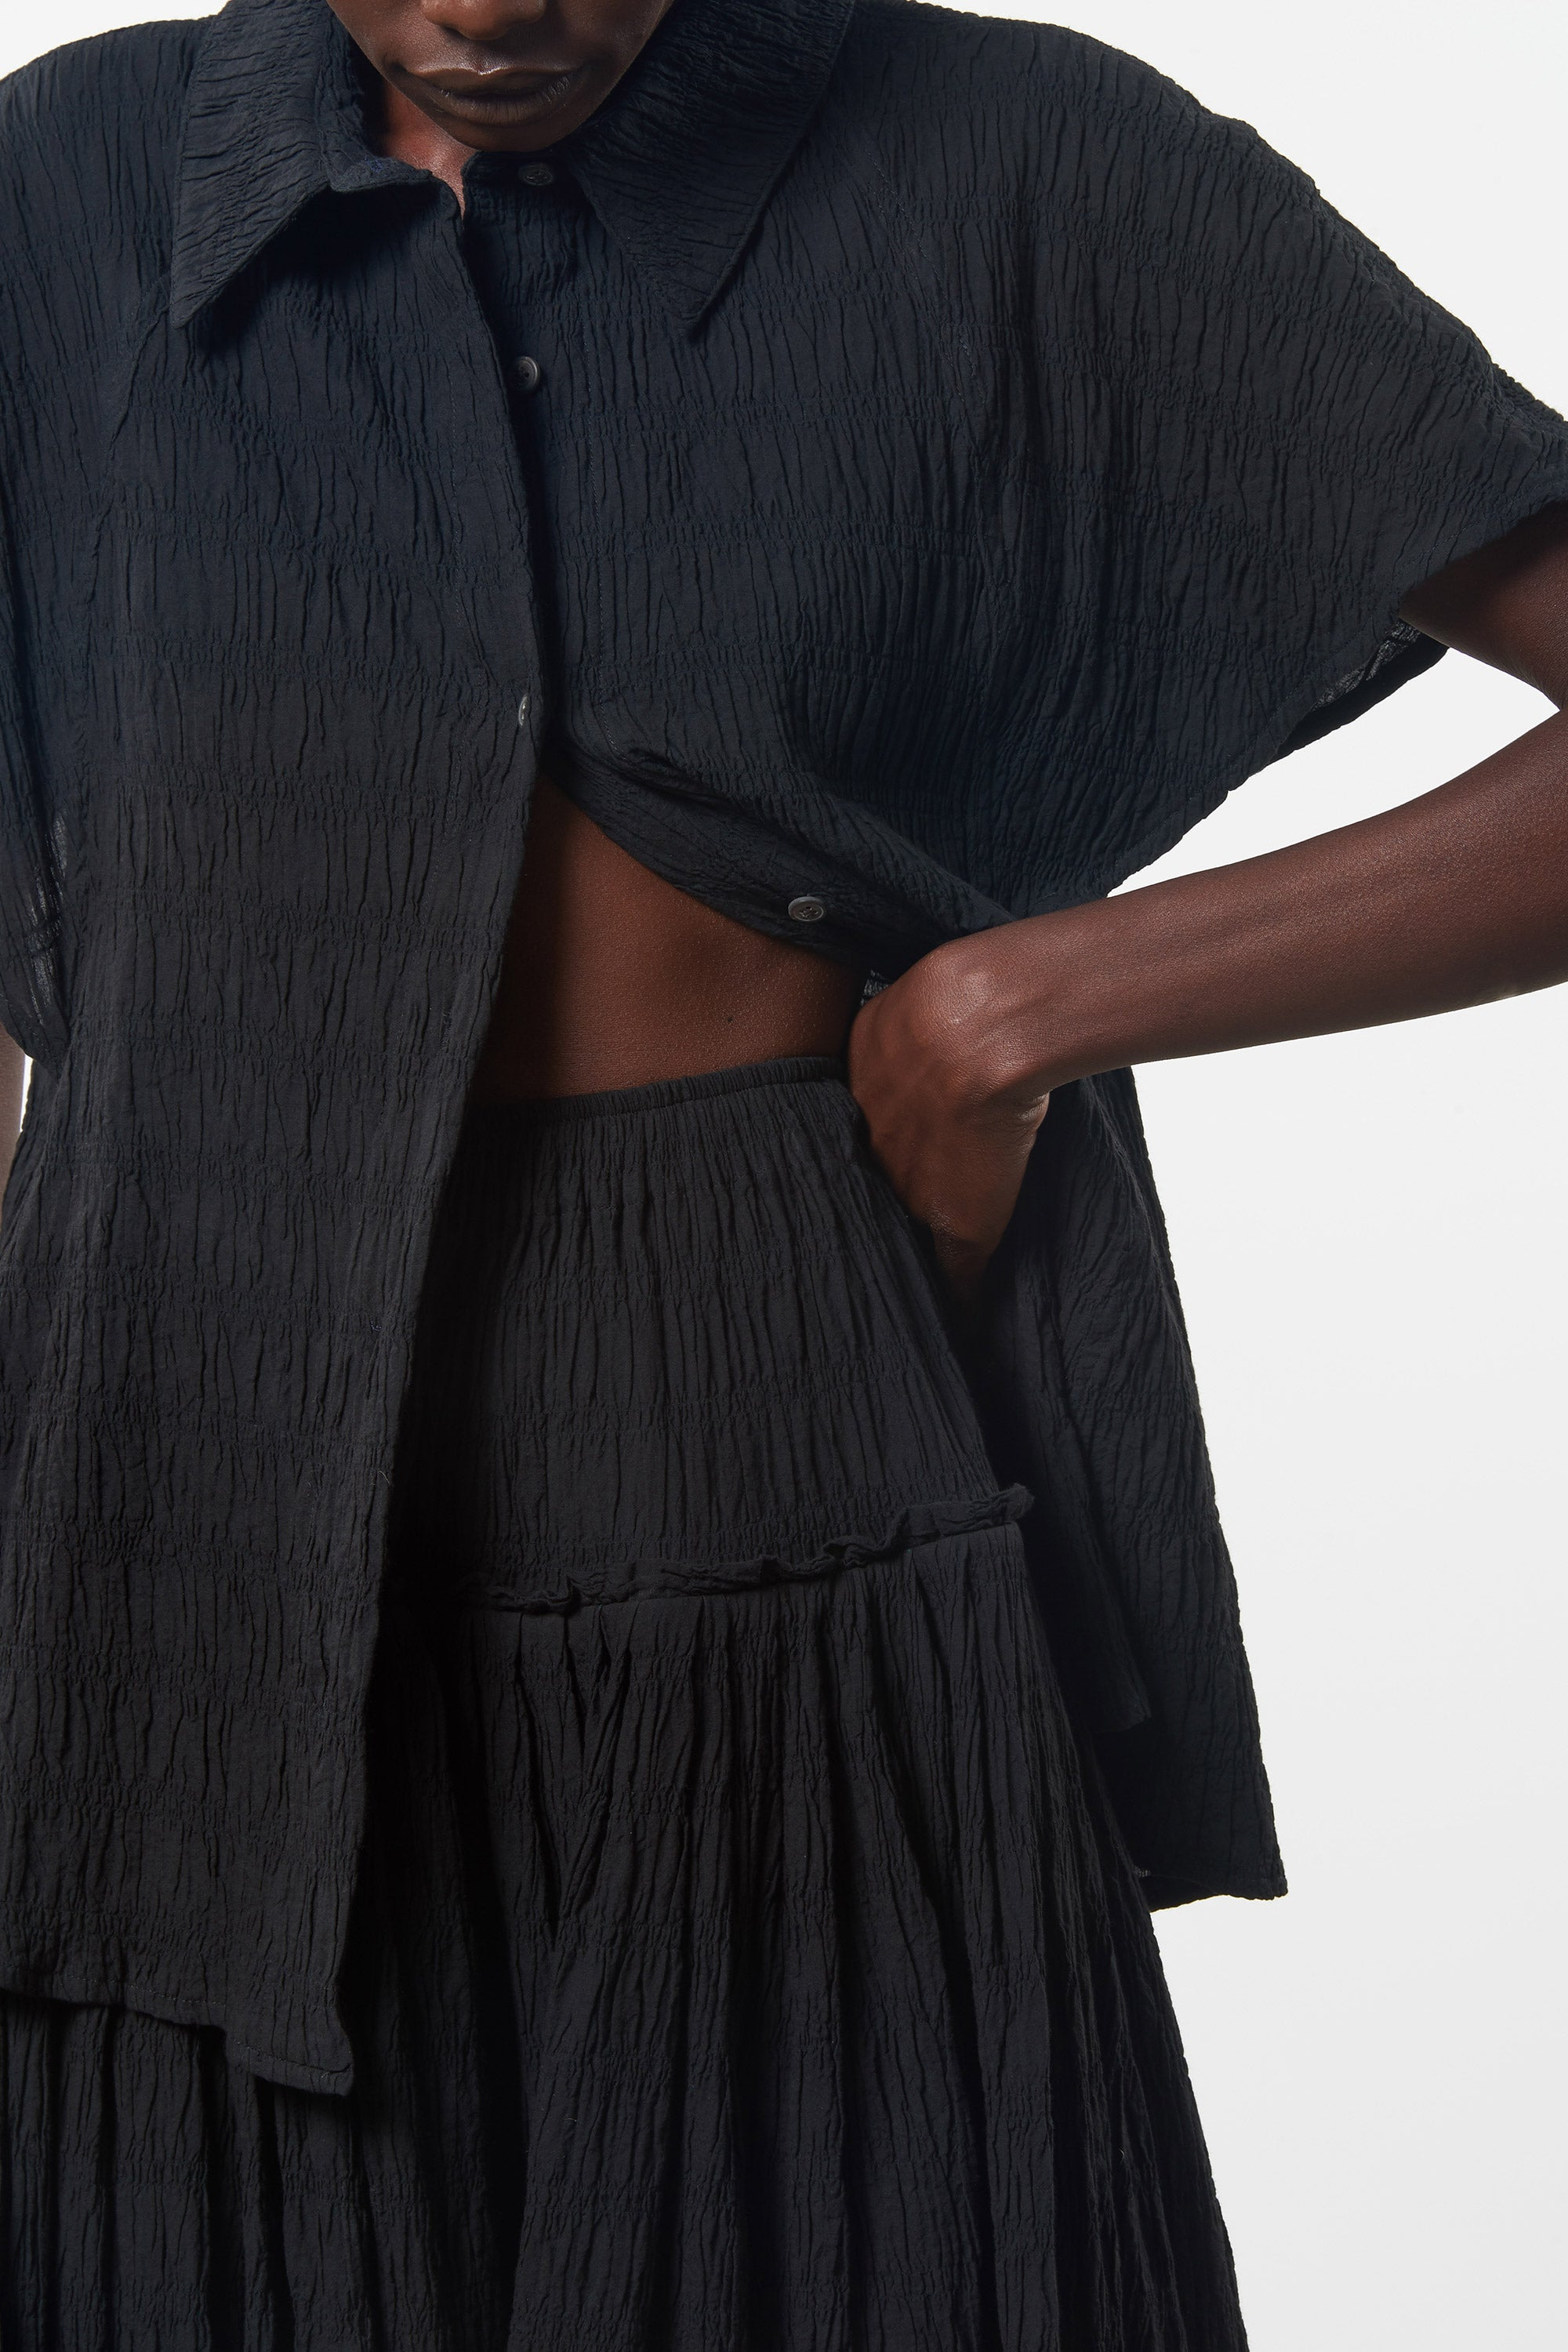 Mara Hoffman Black Alejandra Skirt in organic cotton (detail)